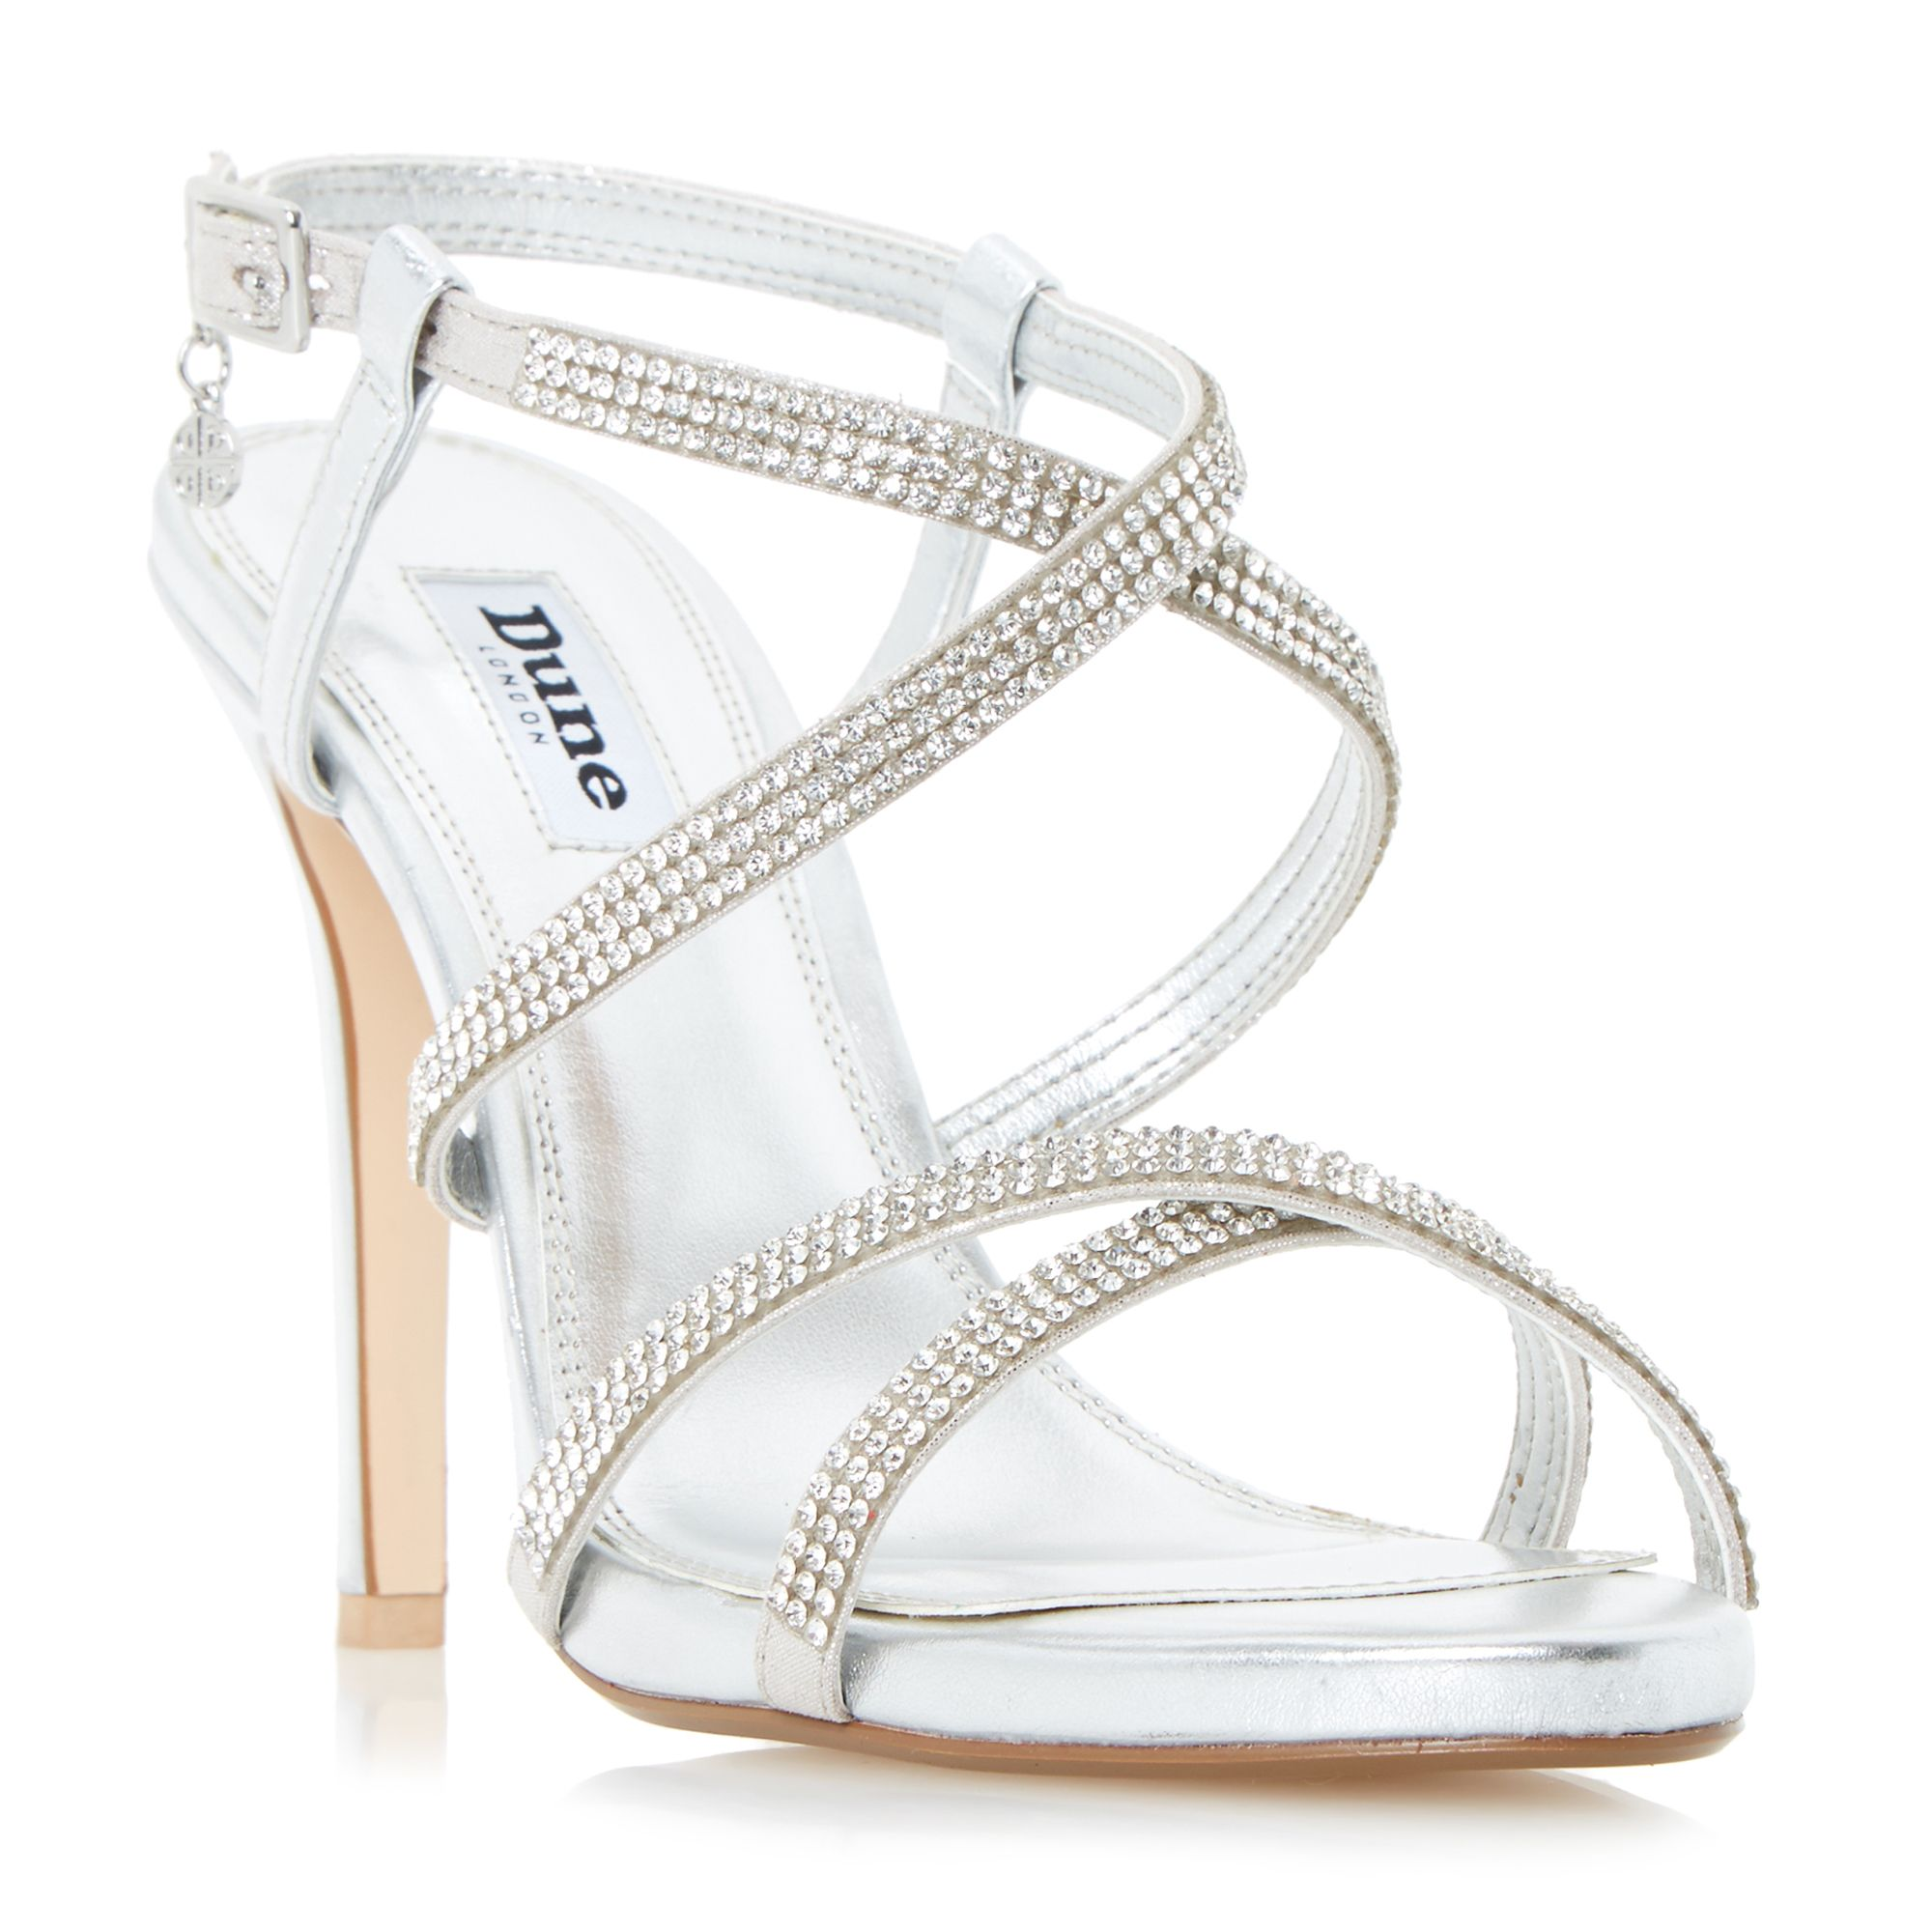 Dune Silver Ladies Shoes at House of Fraser